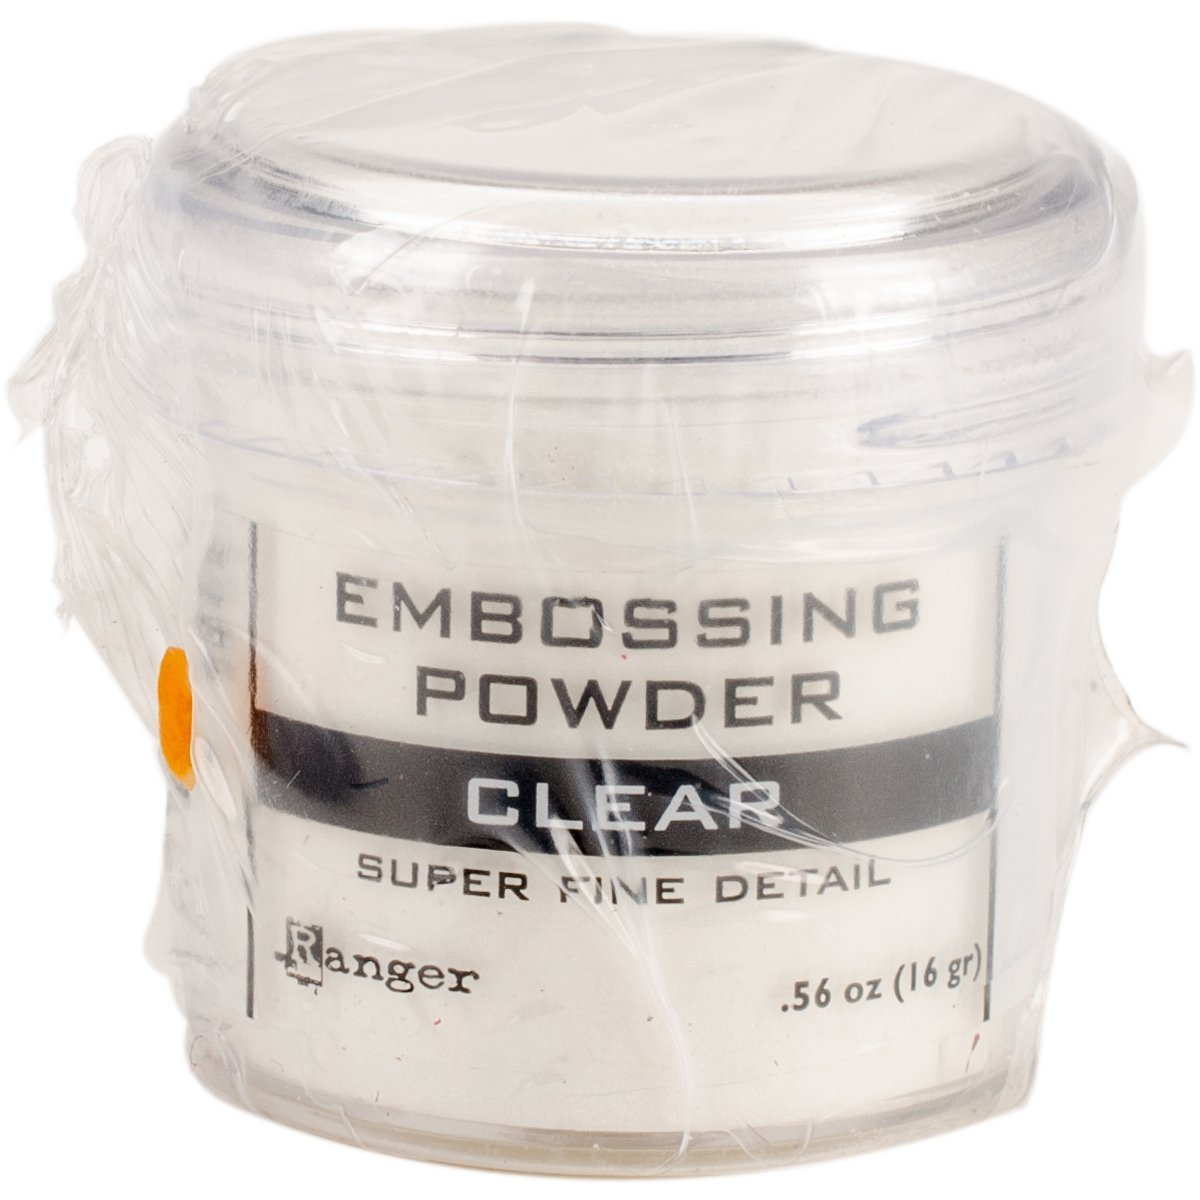 Clear embossing powder